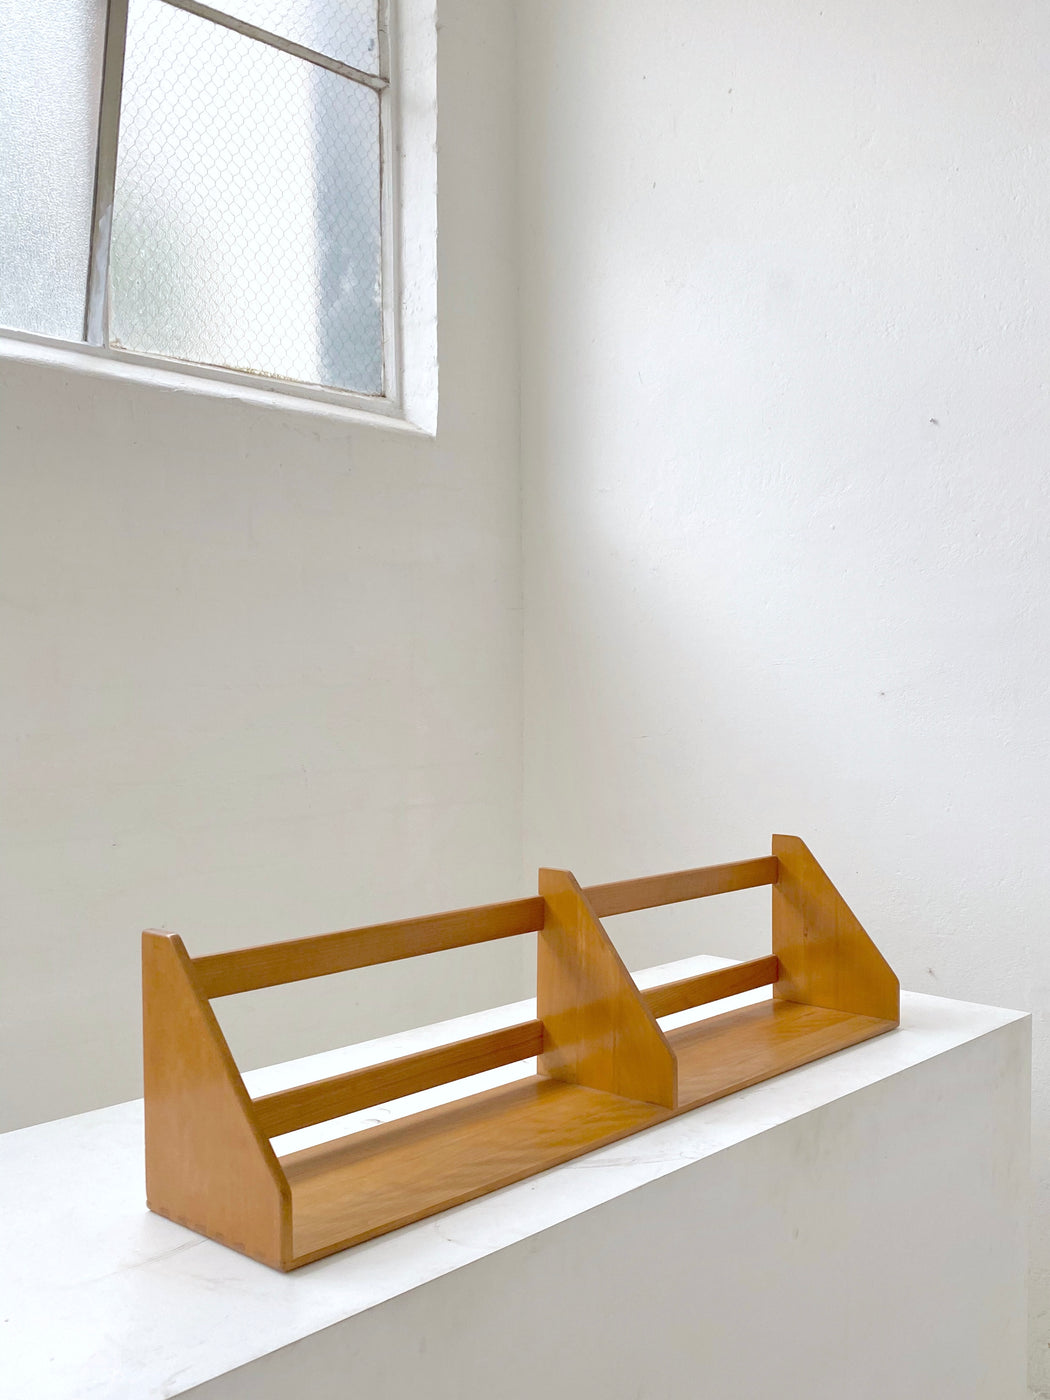 Børge Mogensen 'B5' Wall Shelf